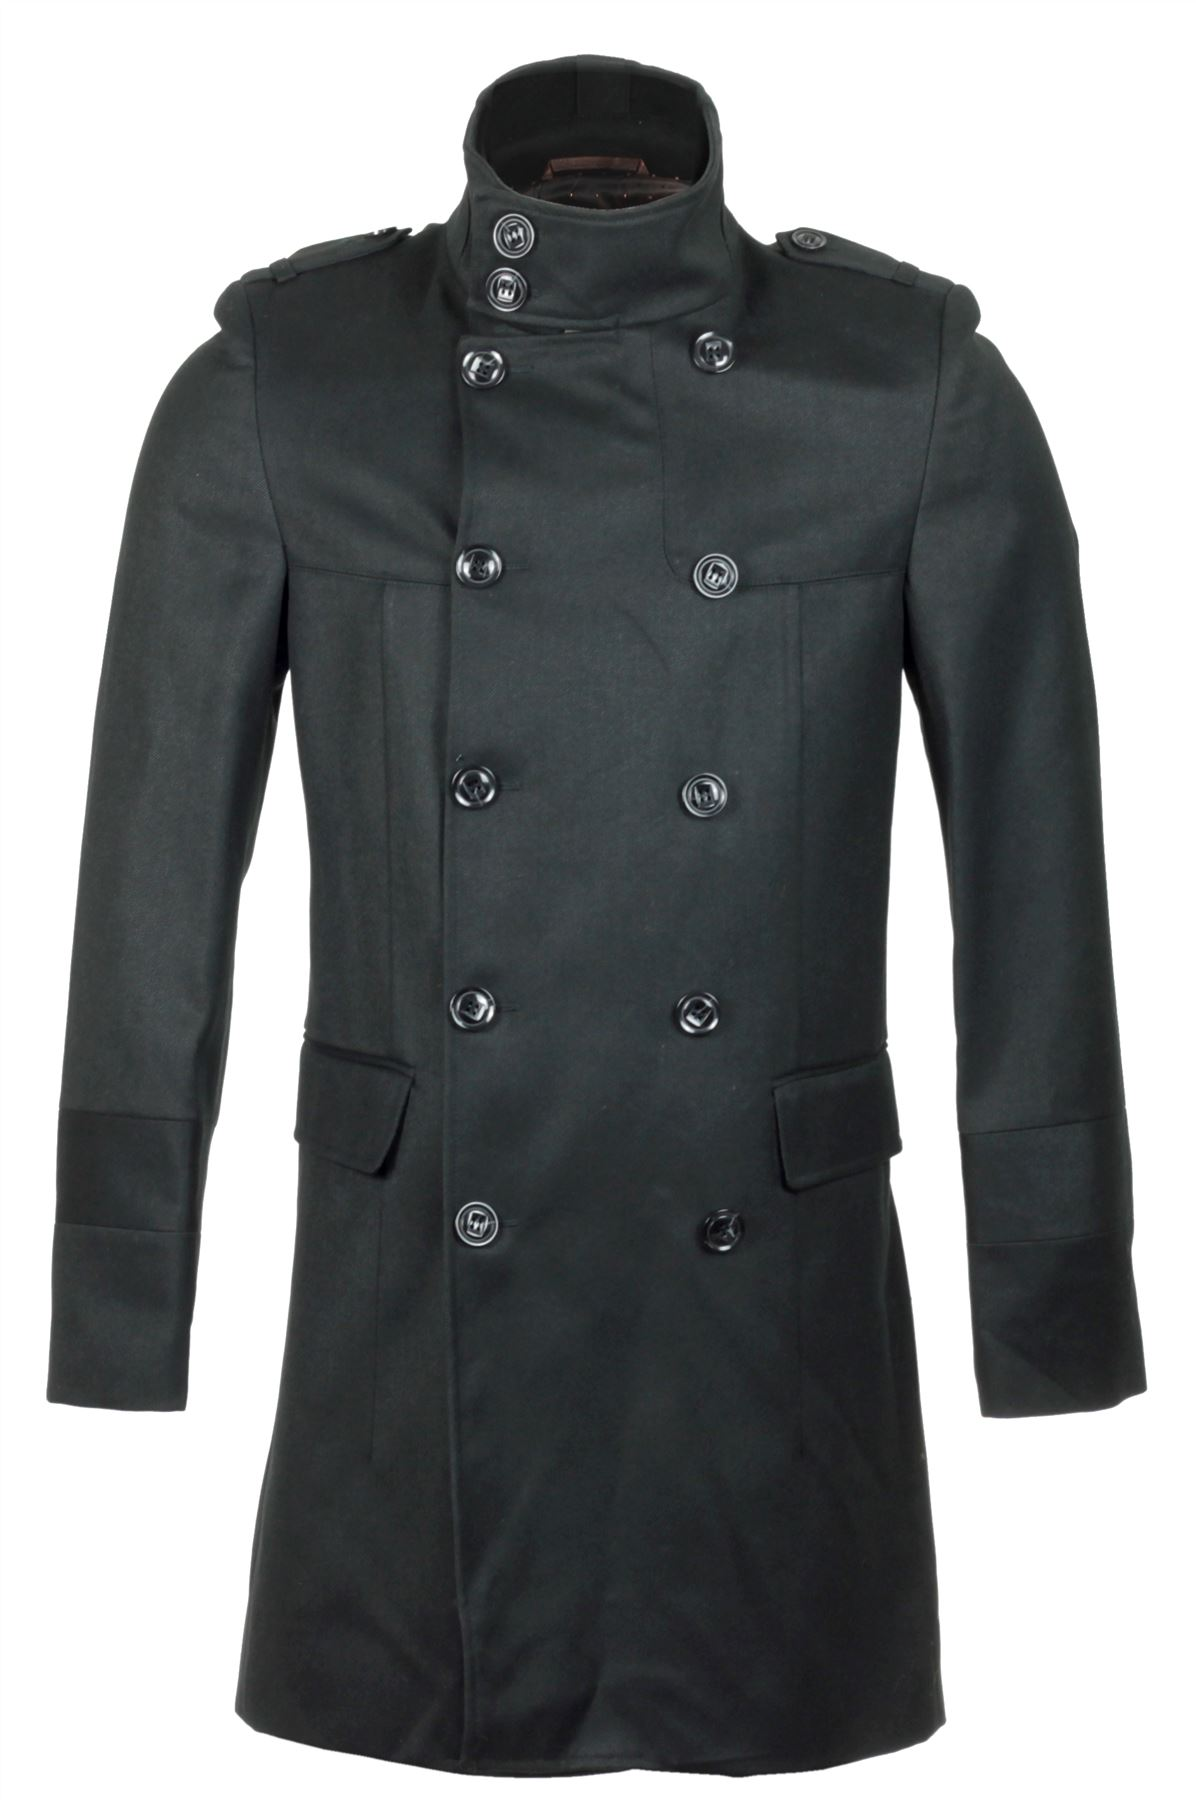 Mens double breasted overcoat